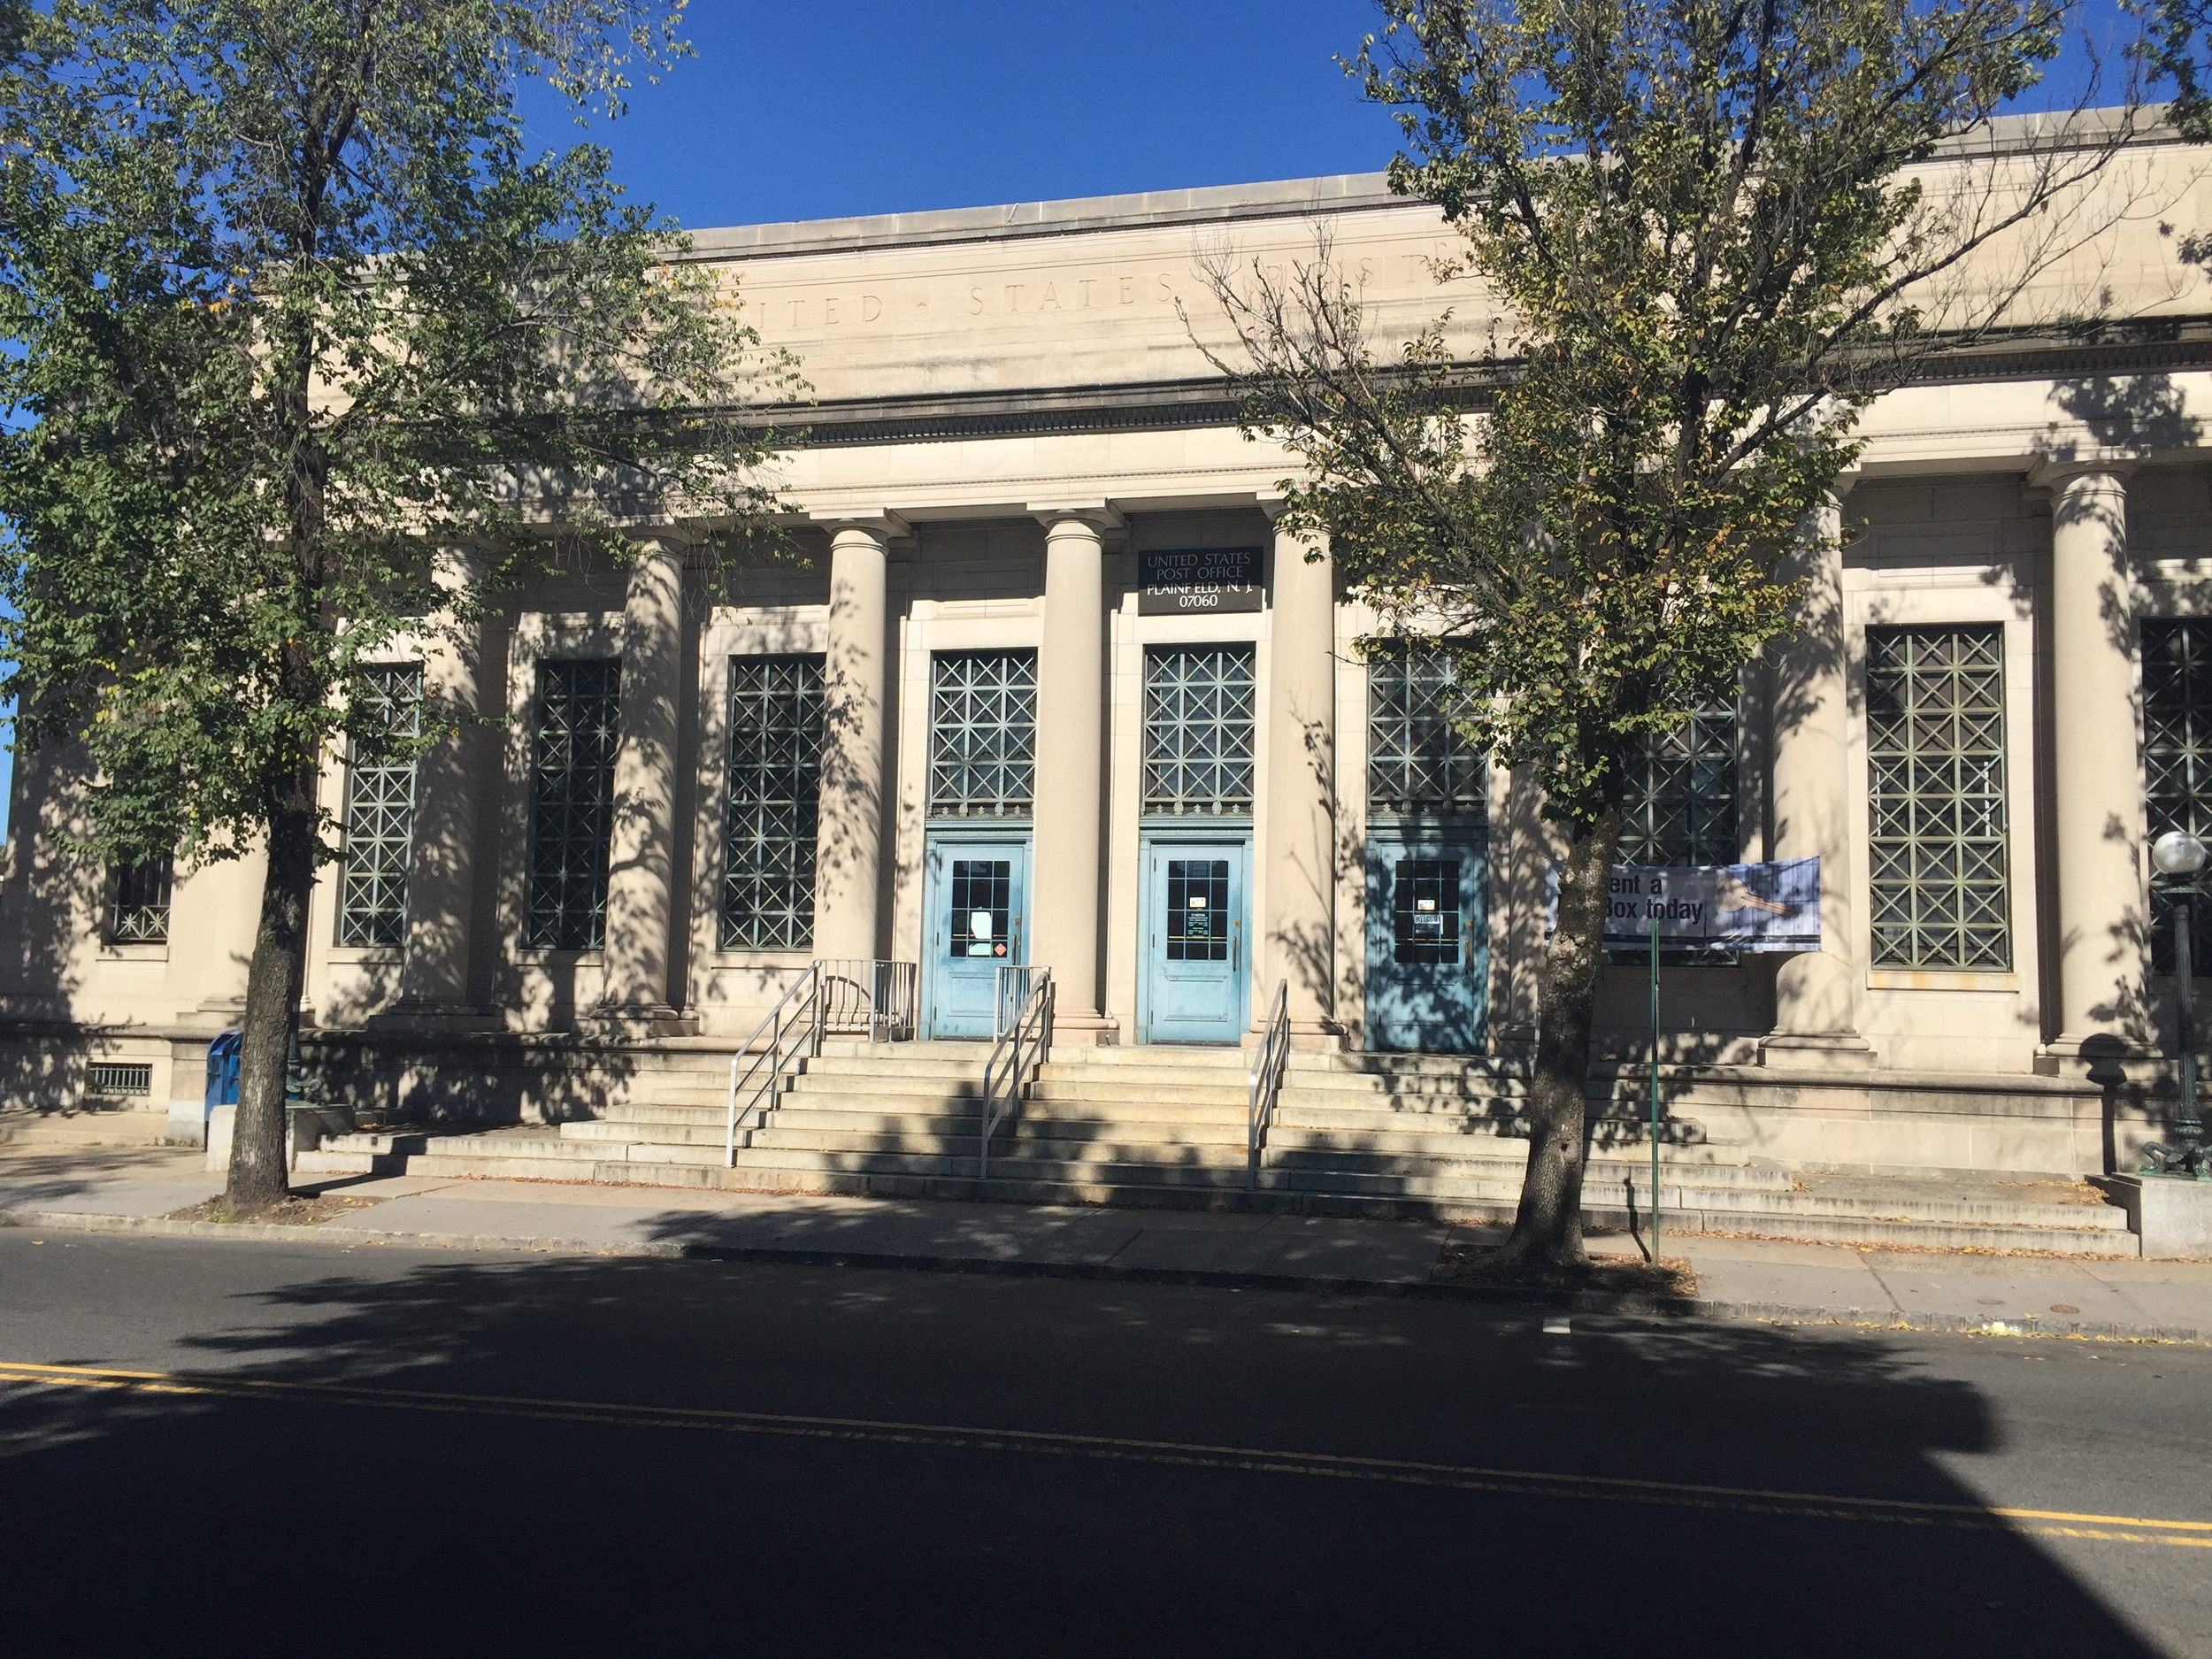 Plainfield Post Office | 201-221 Watchung Avenue | Built 1916 | Neoclassical Revival